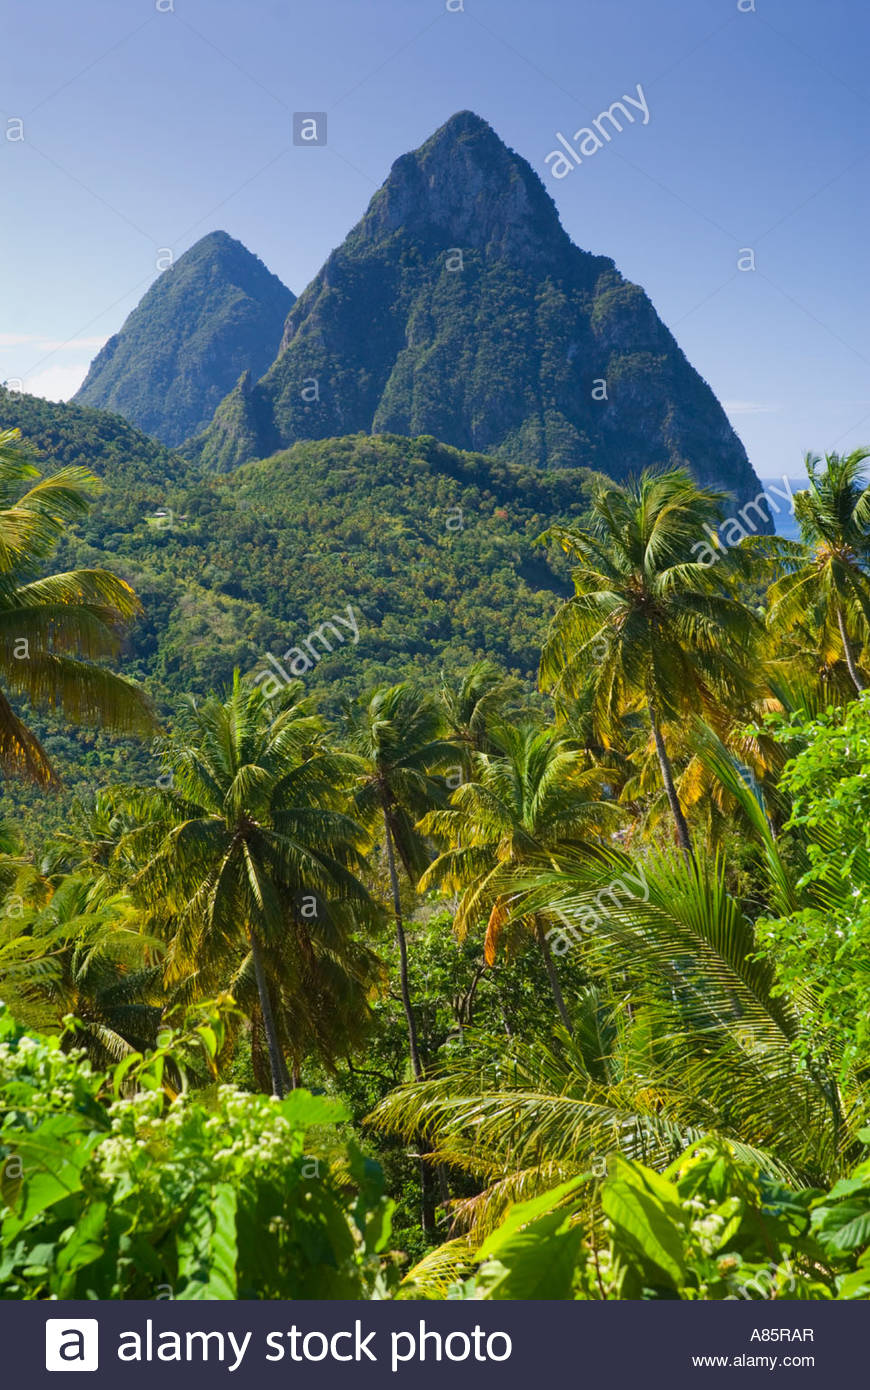 The Pitons, near Soufrière, St Lucia, Windward Islands, Caribbean - Stock Image